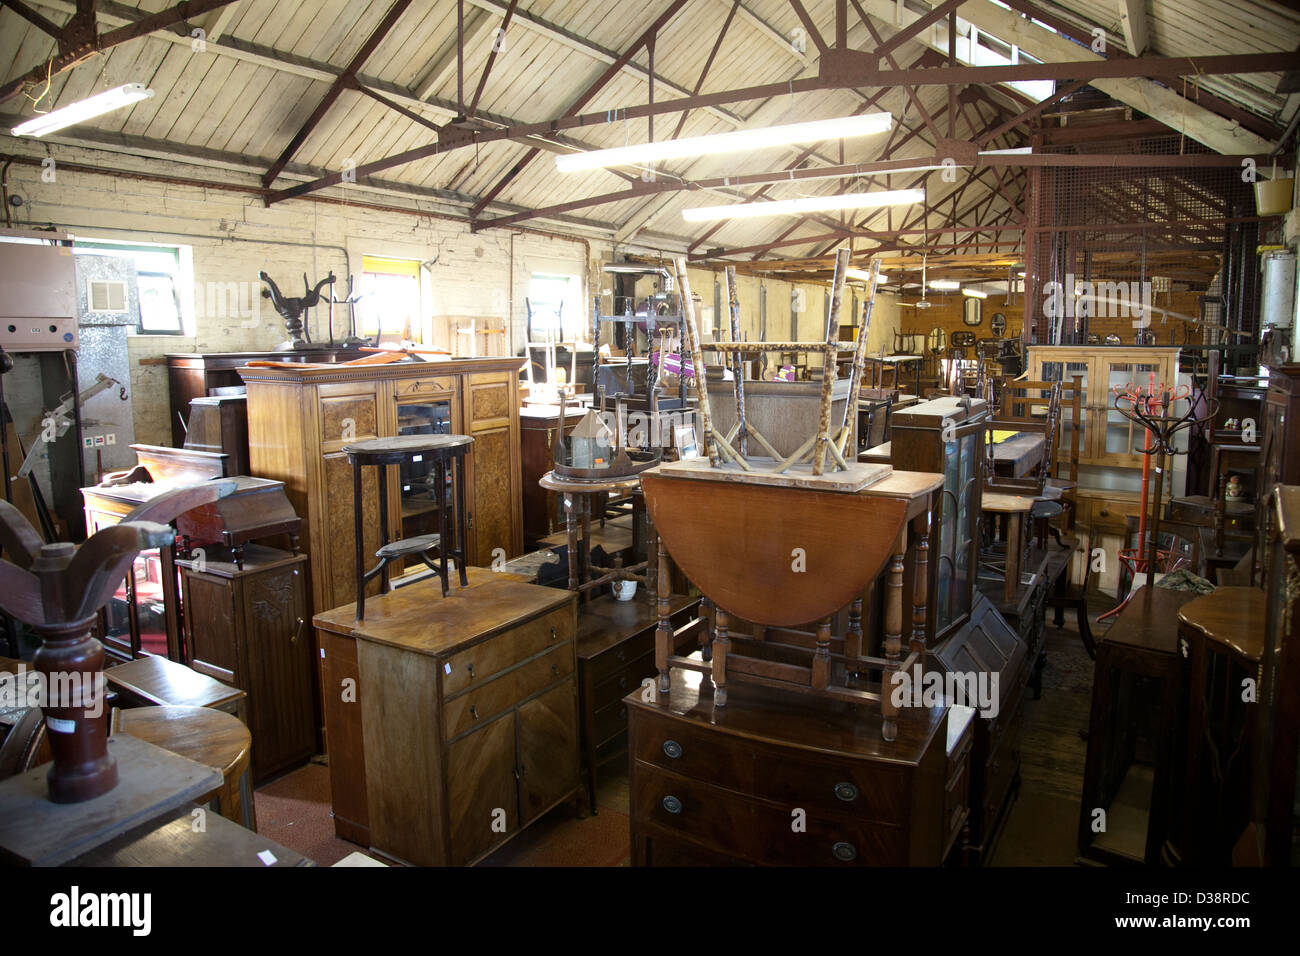 R G Scotts recycling shop in Margate Kent UK - Stock Image